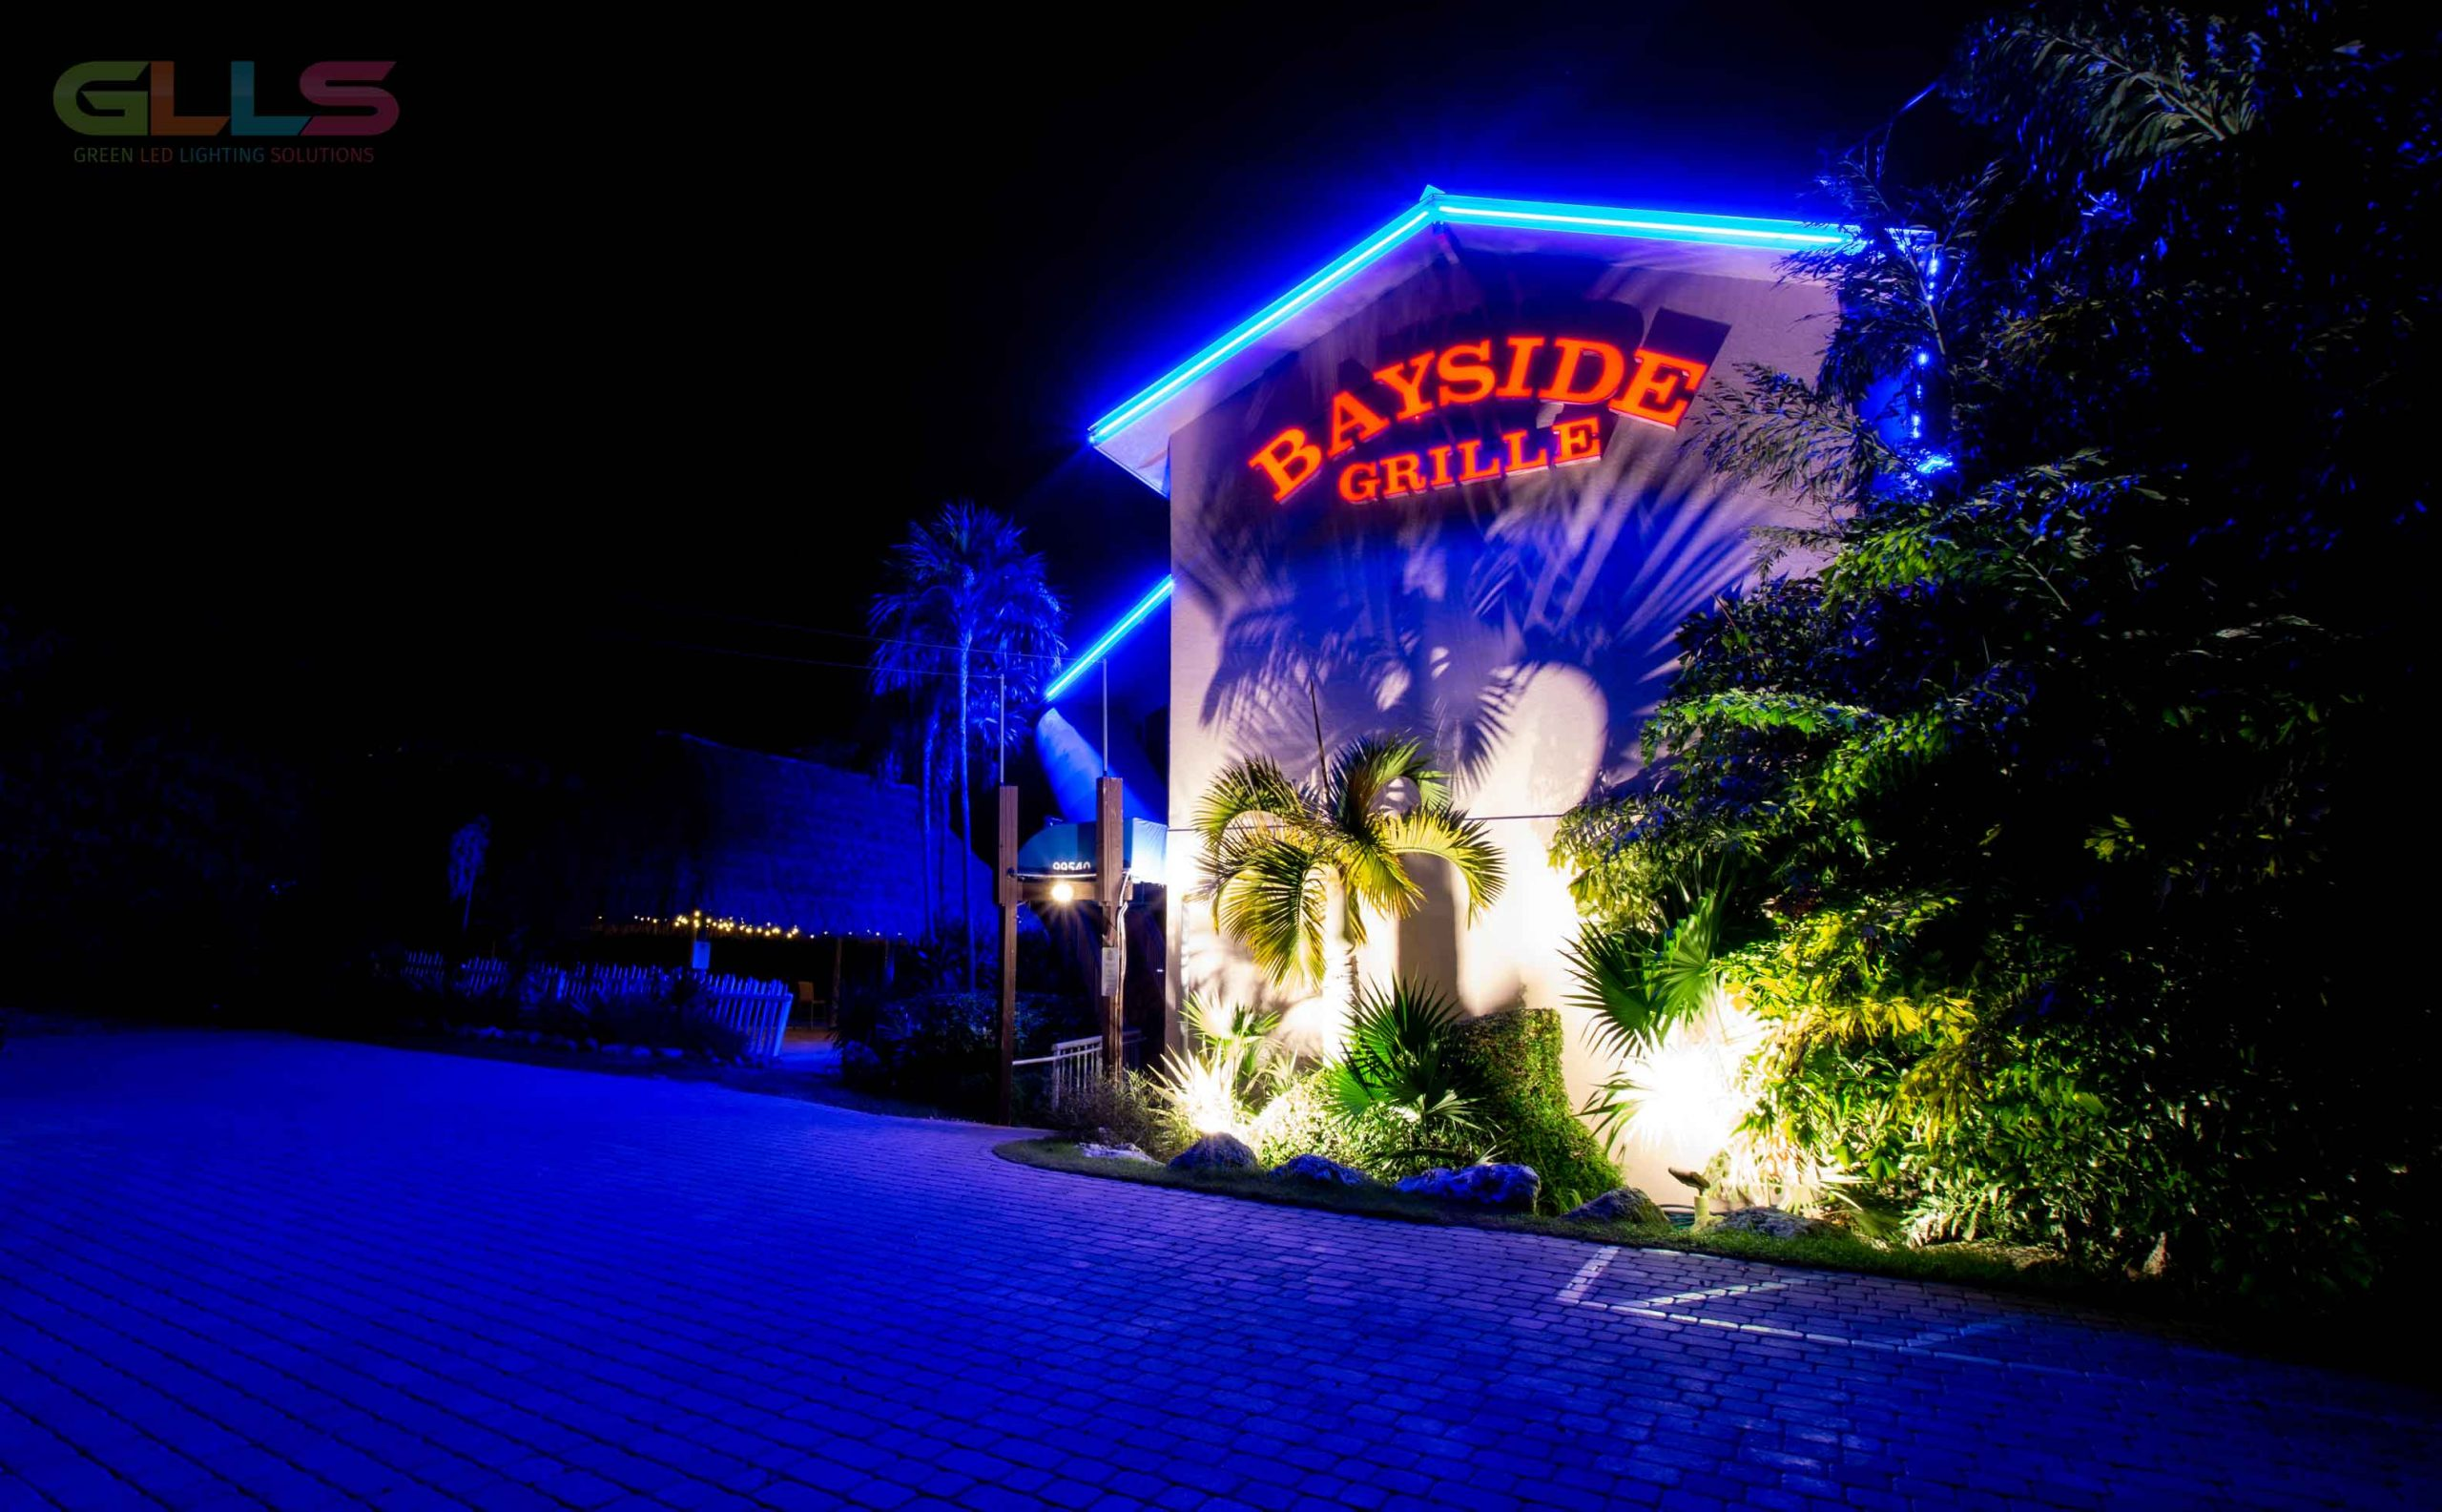 Bayside-Grill-Front-Building8